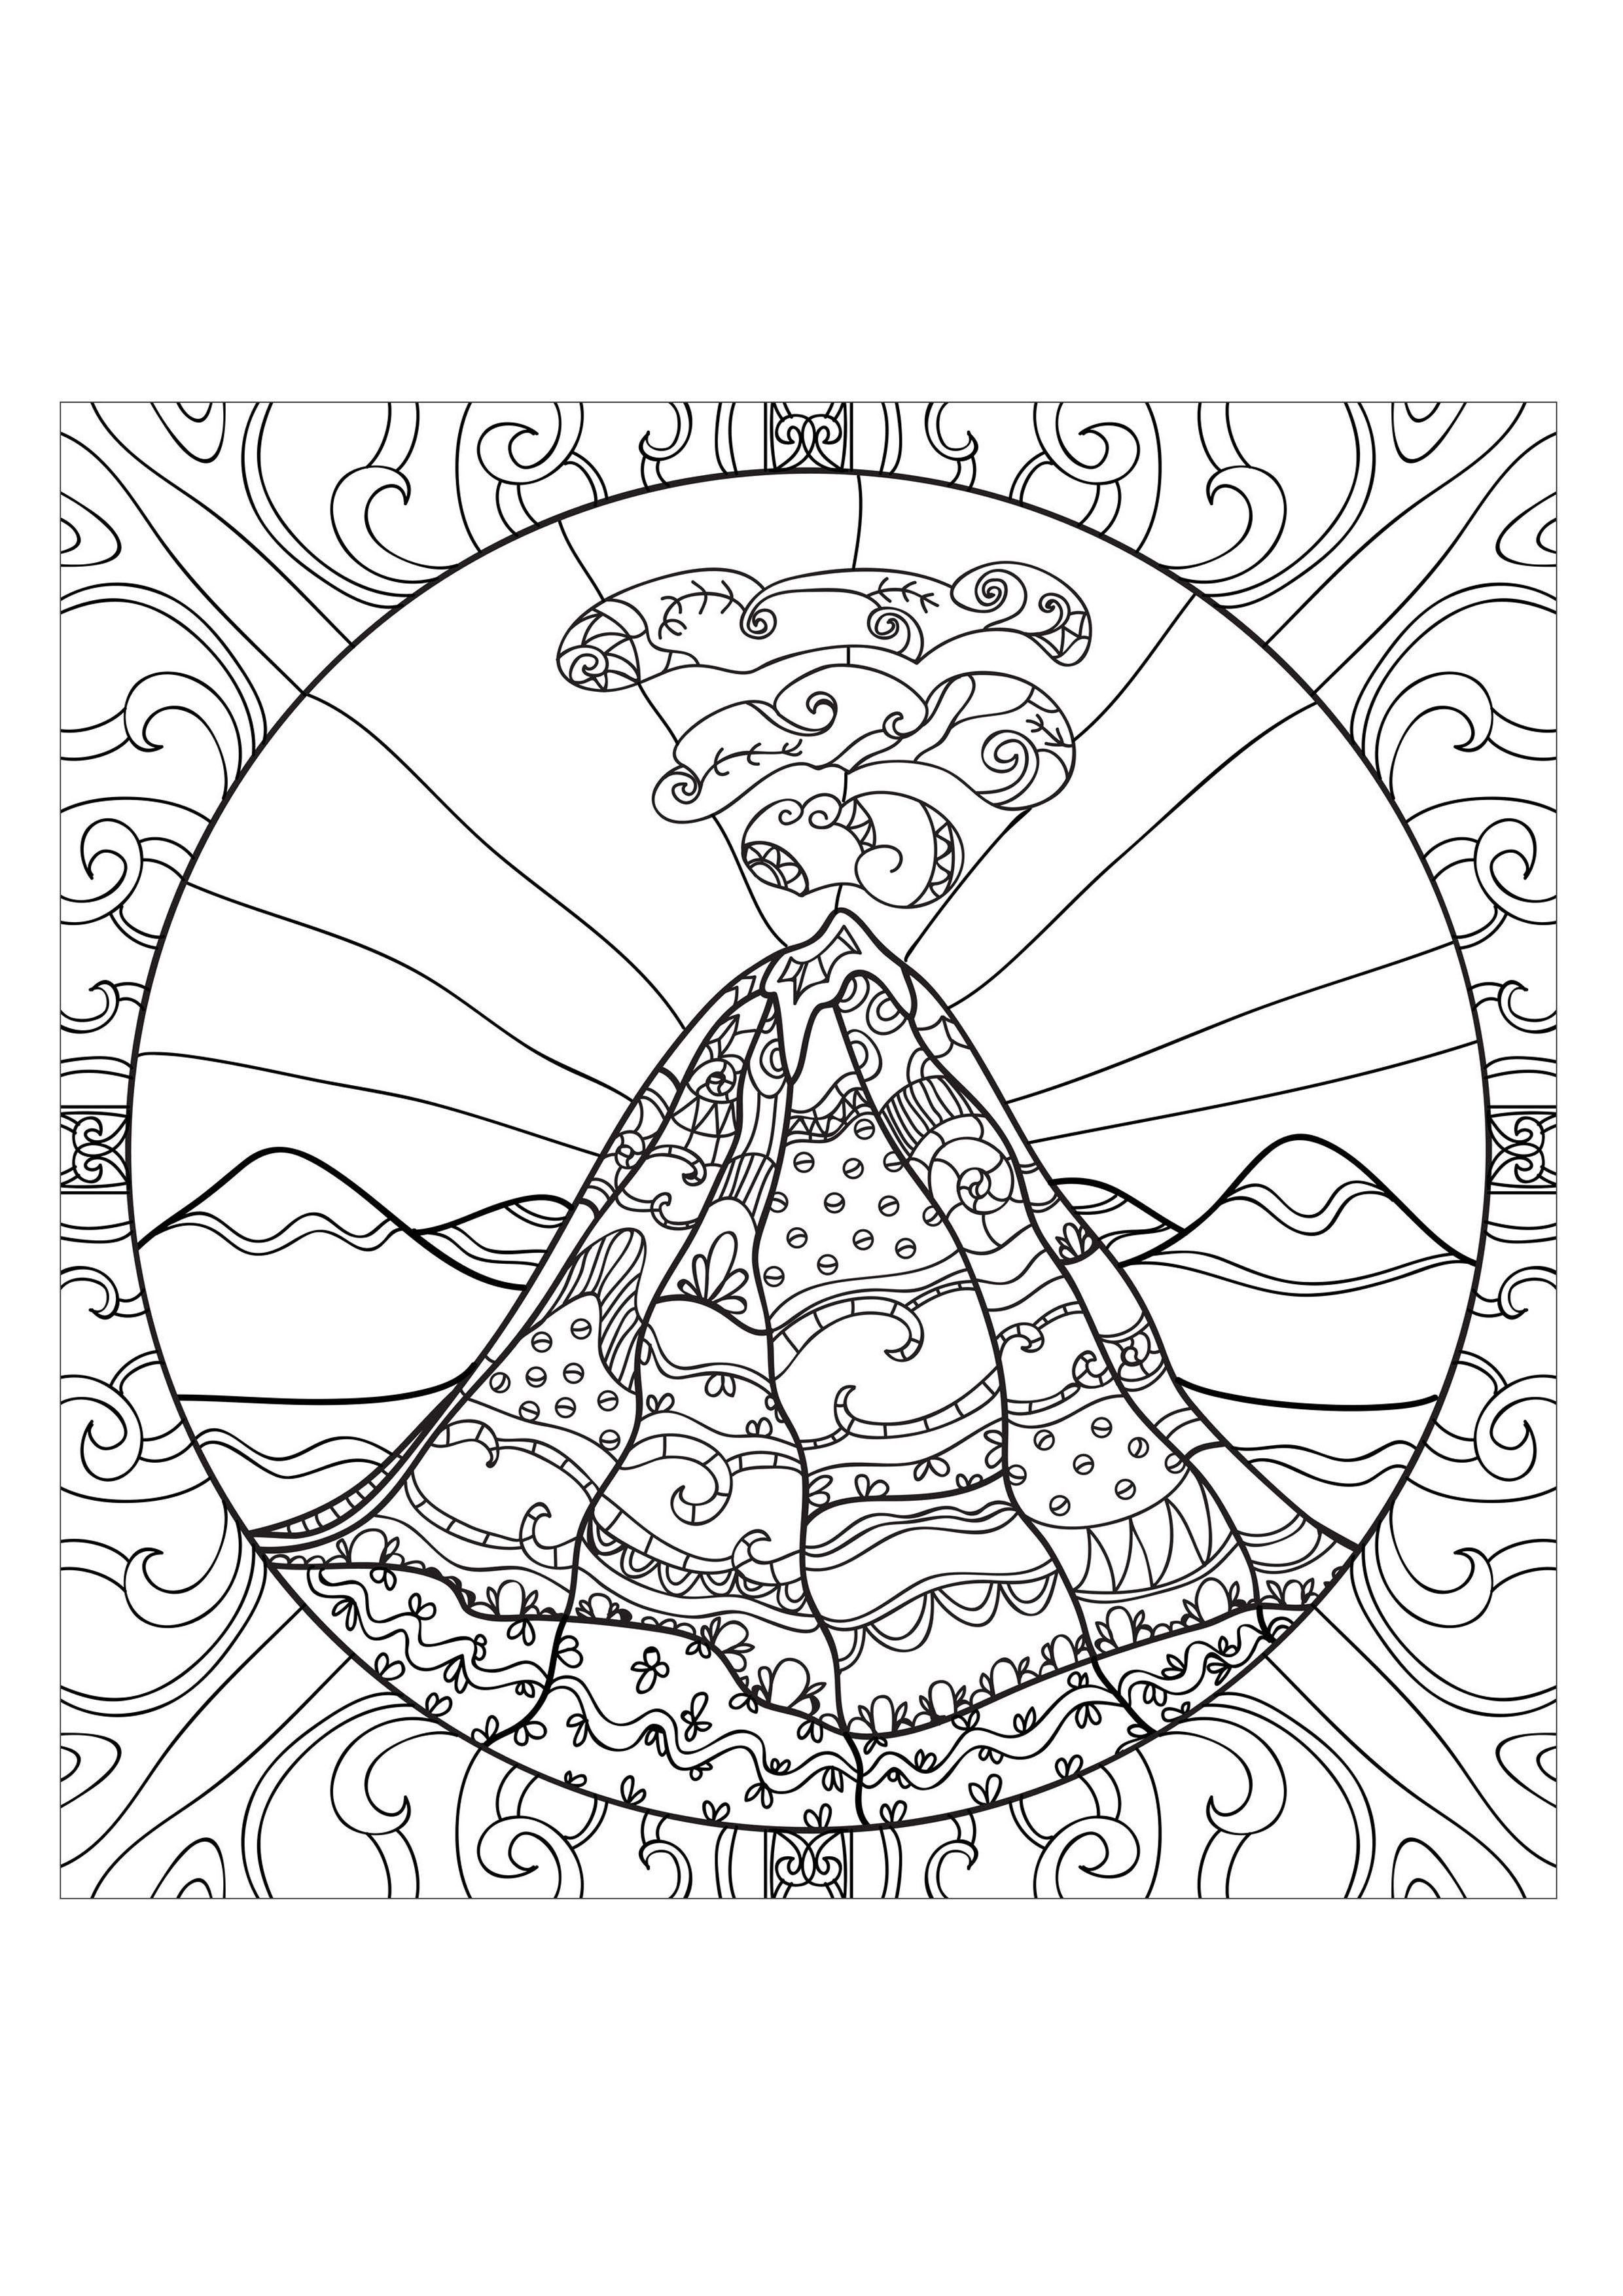 Coloring Page Adults Volcano 2 From The Gallery Zen Anti